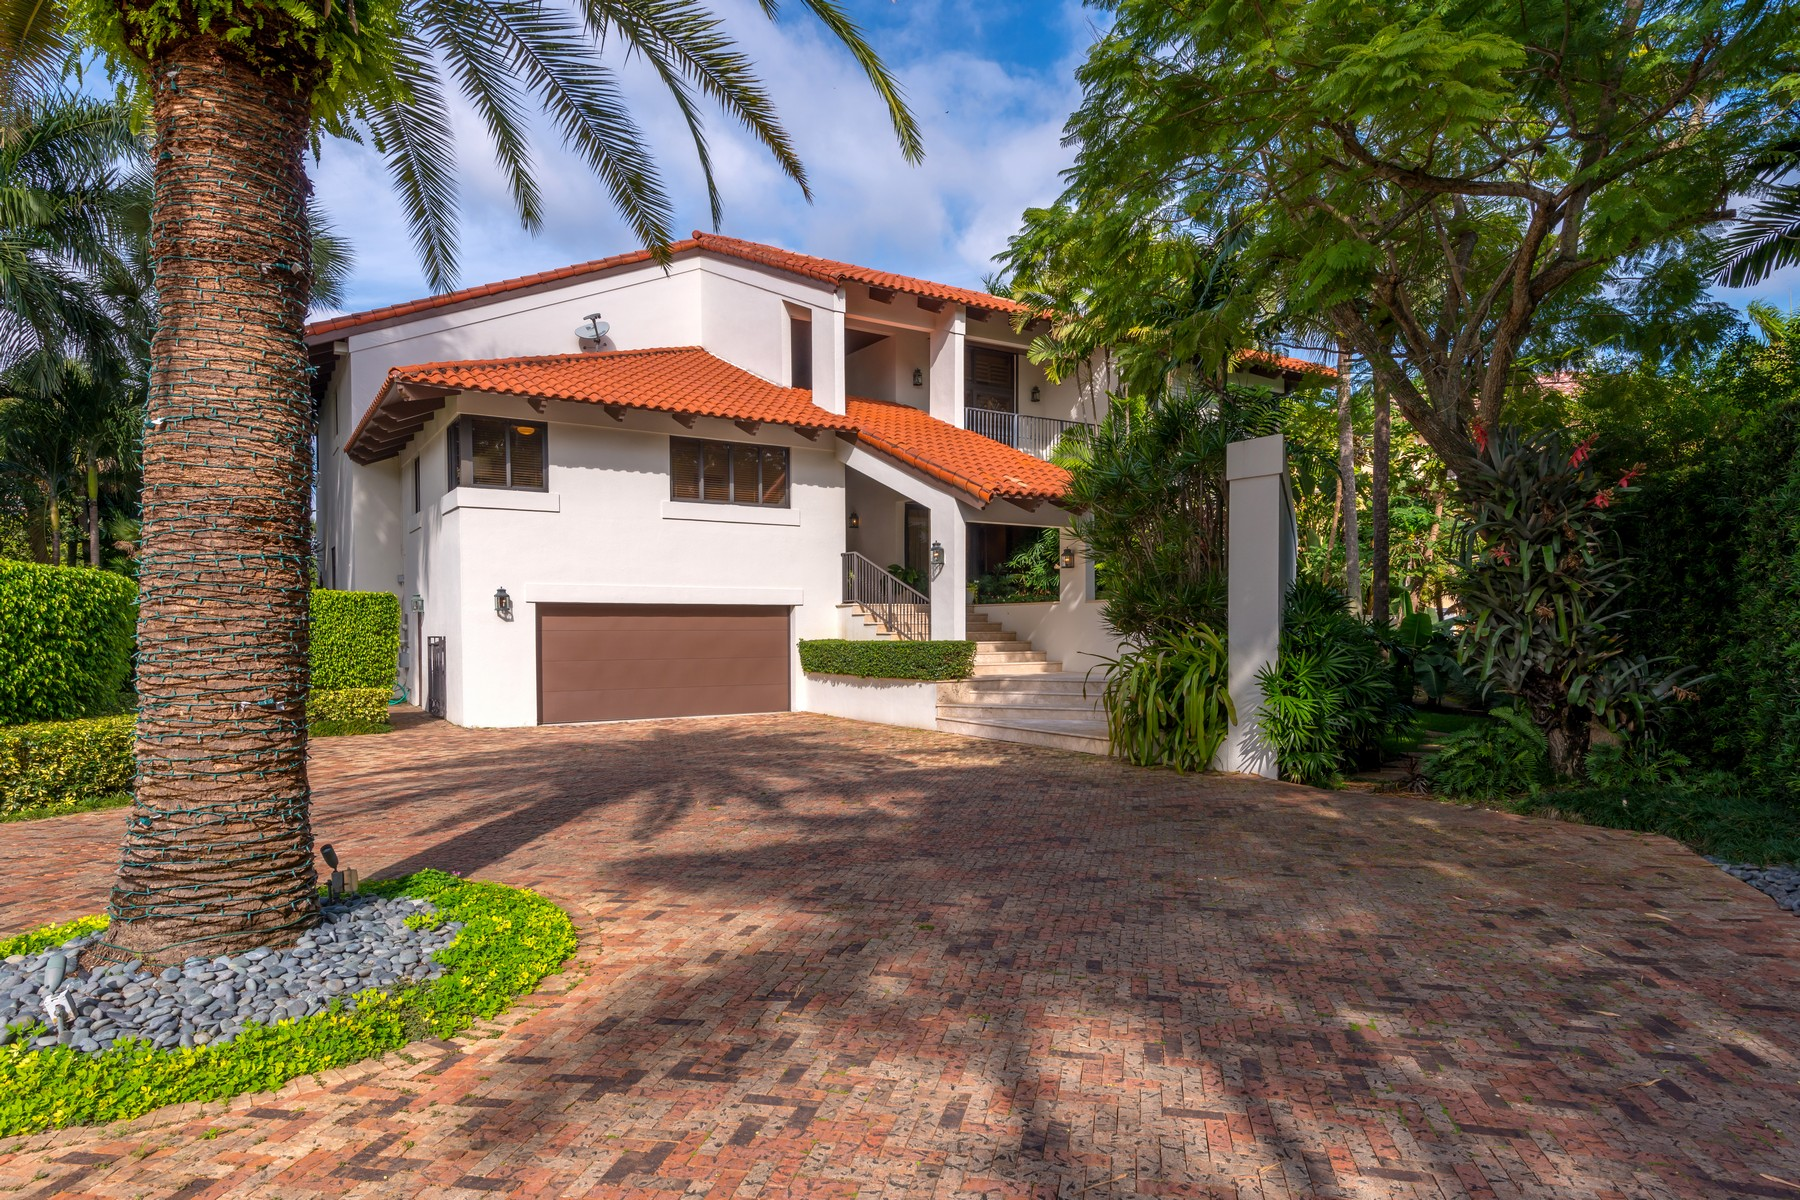 Single Family Home for Sale at 6900 Mira Flores Av Coral Gables, Florida 33143 United States